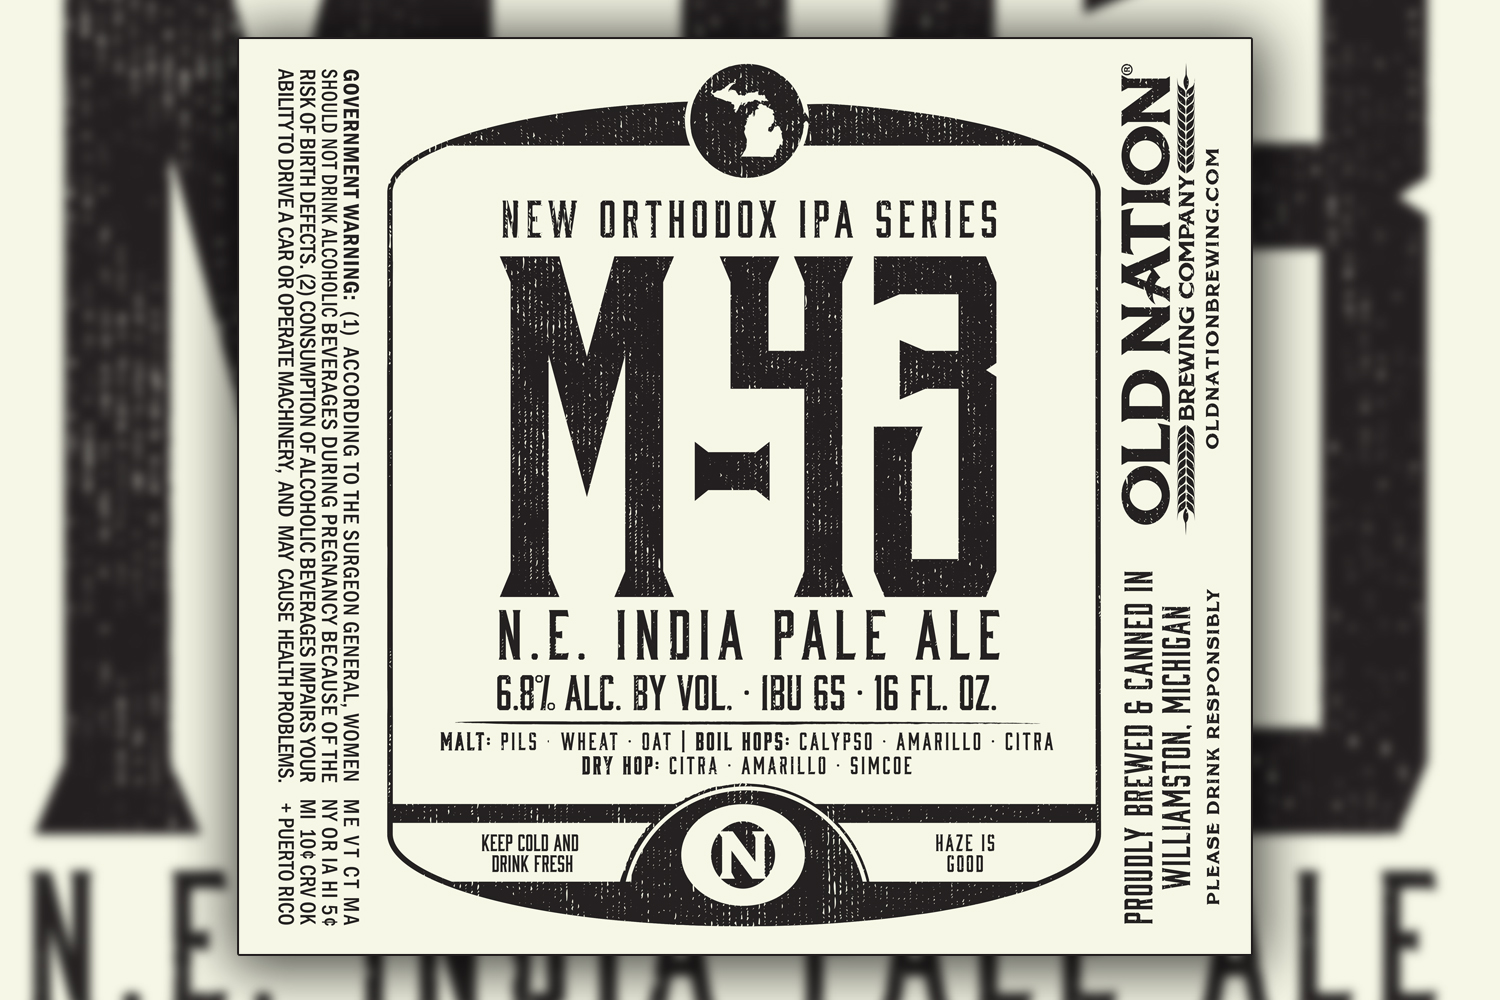 Old Nation New Orthodox IPA Series M-43